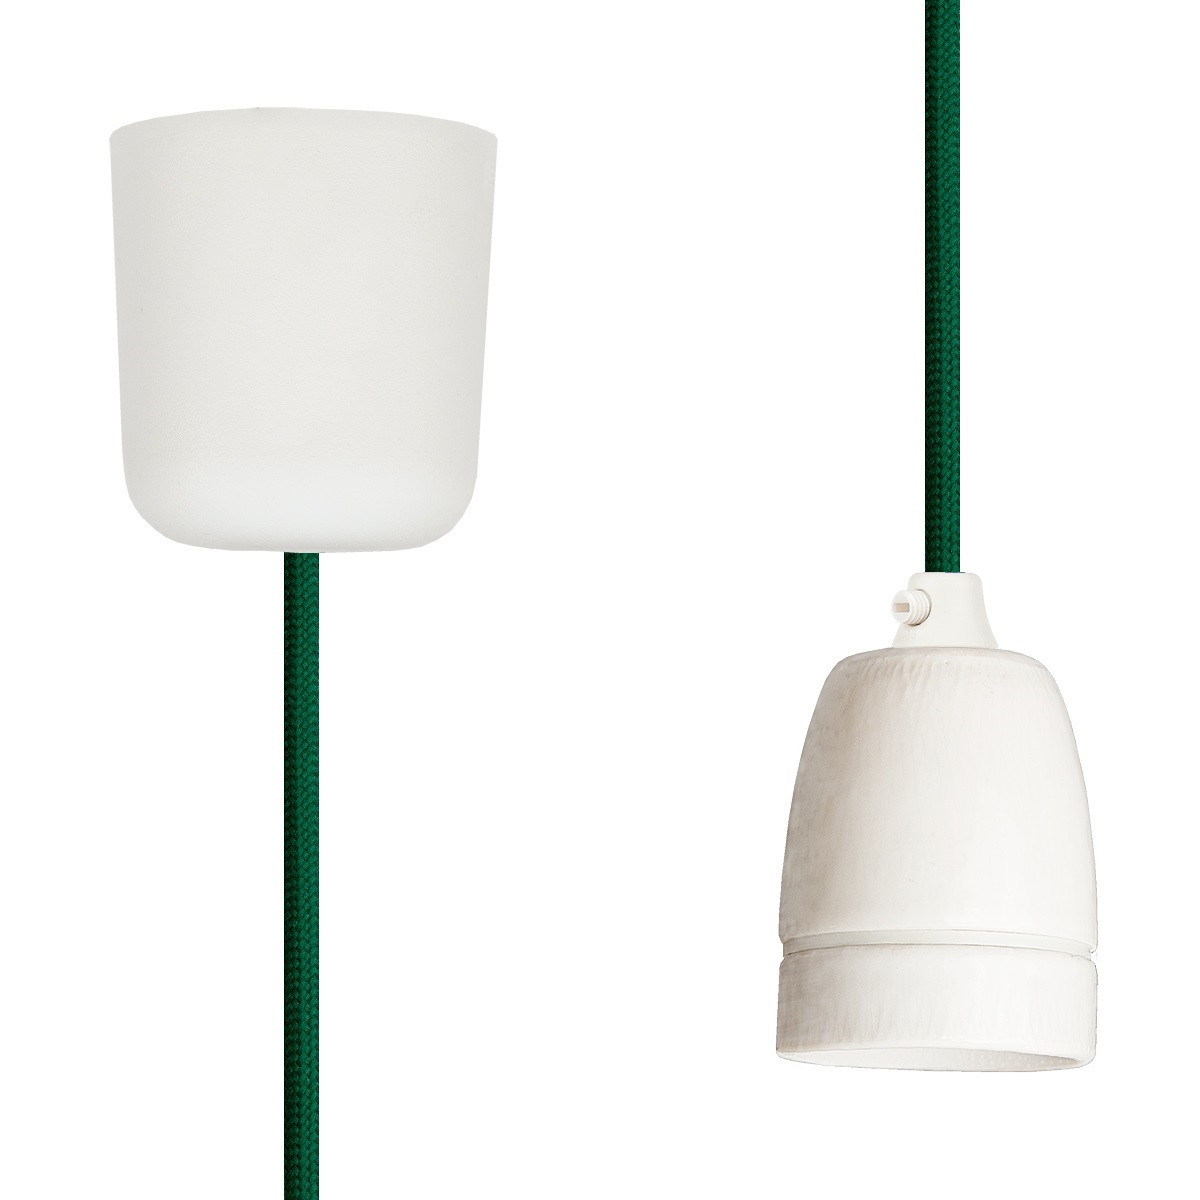 Pendant Lamp Porcelain Green